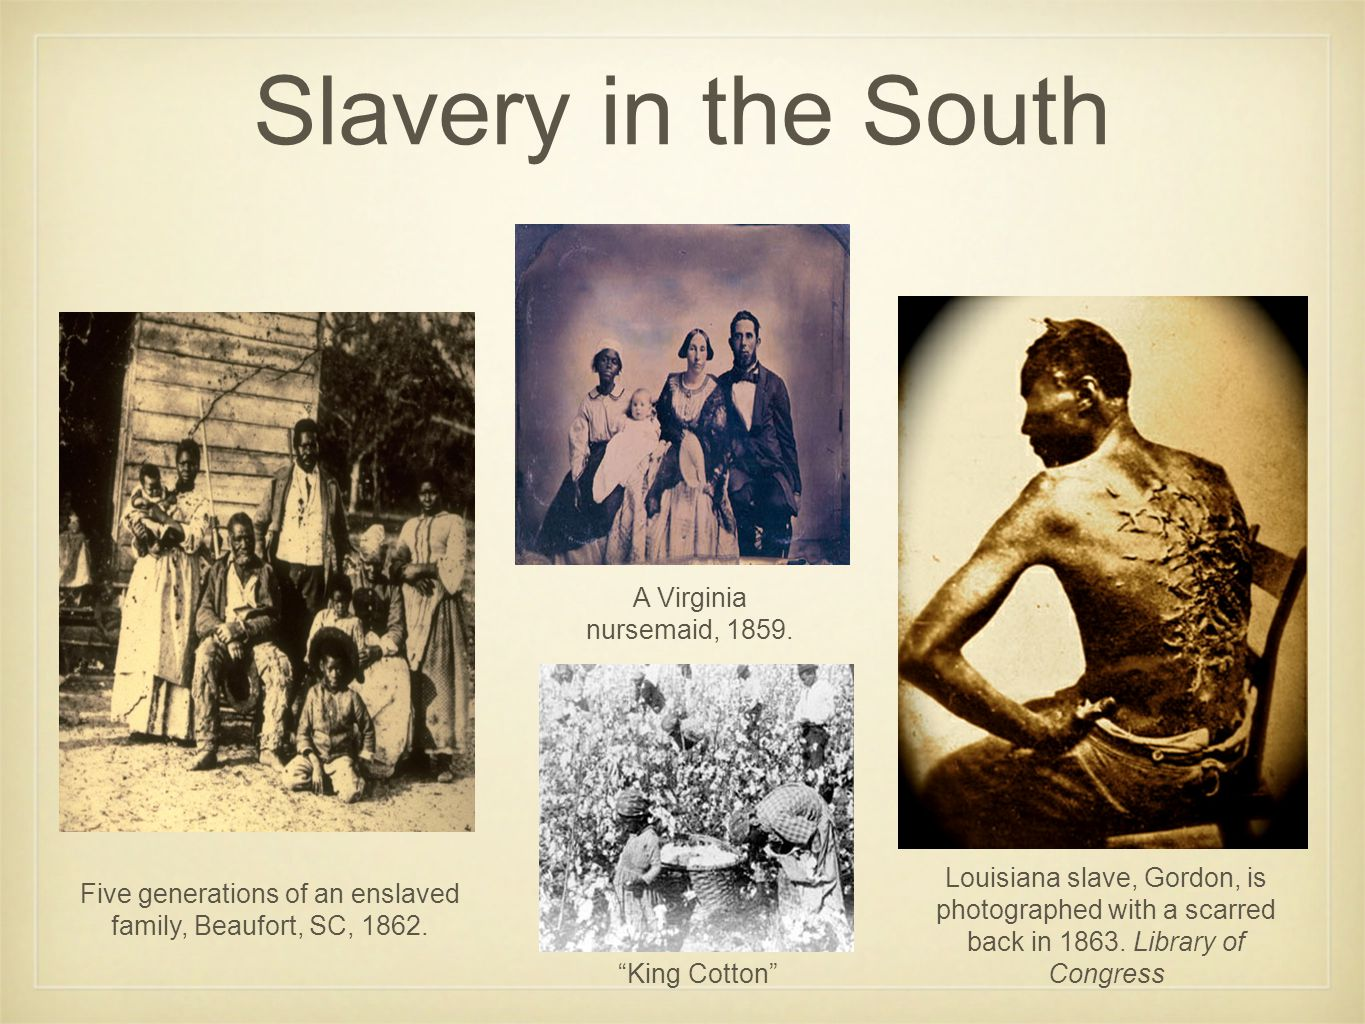 Five generations of an enslaved family, Beaufort, SC, 1862.